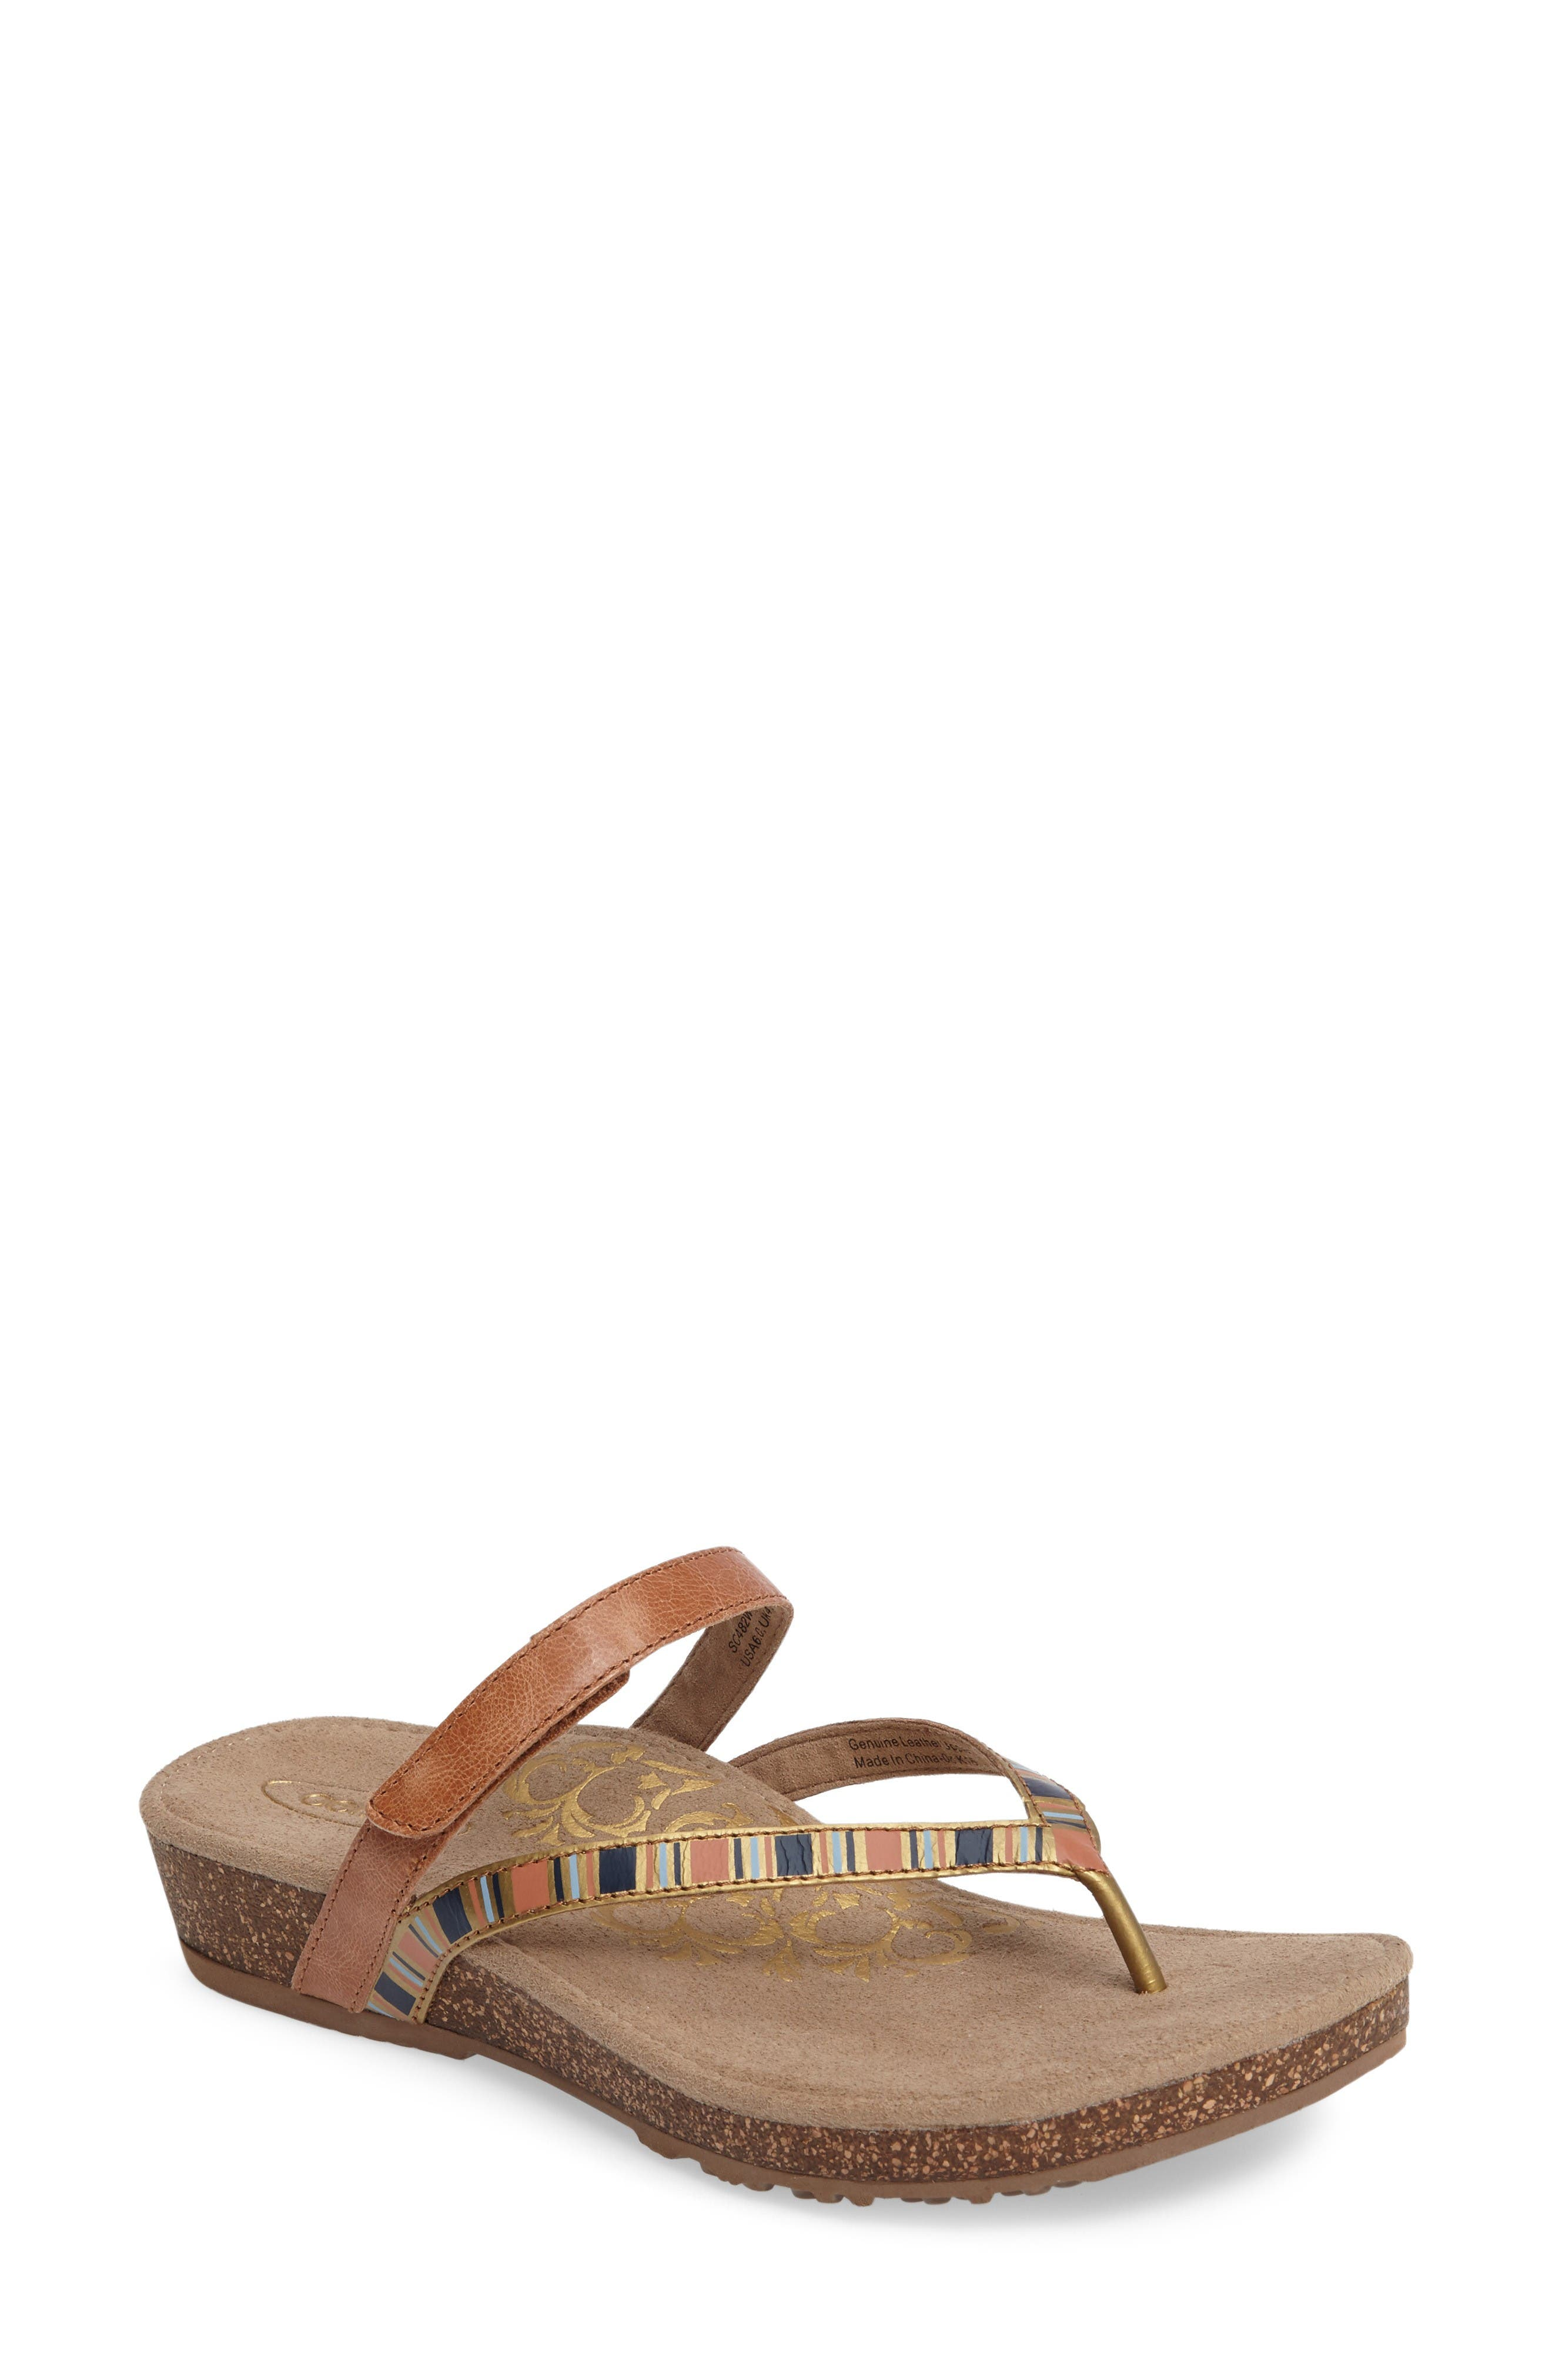 Aetrex Elia Wedge Flip Flop (Women)